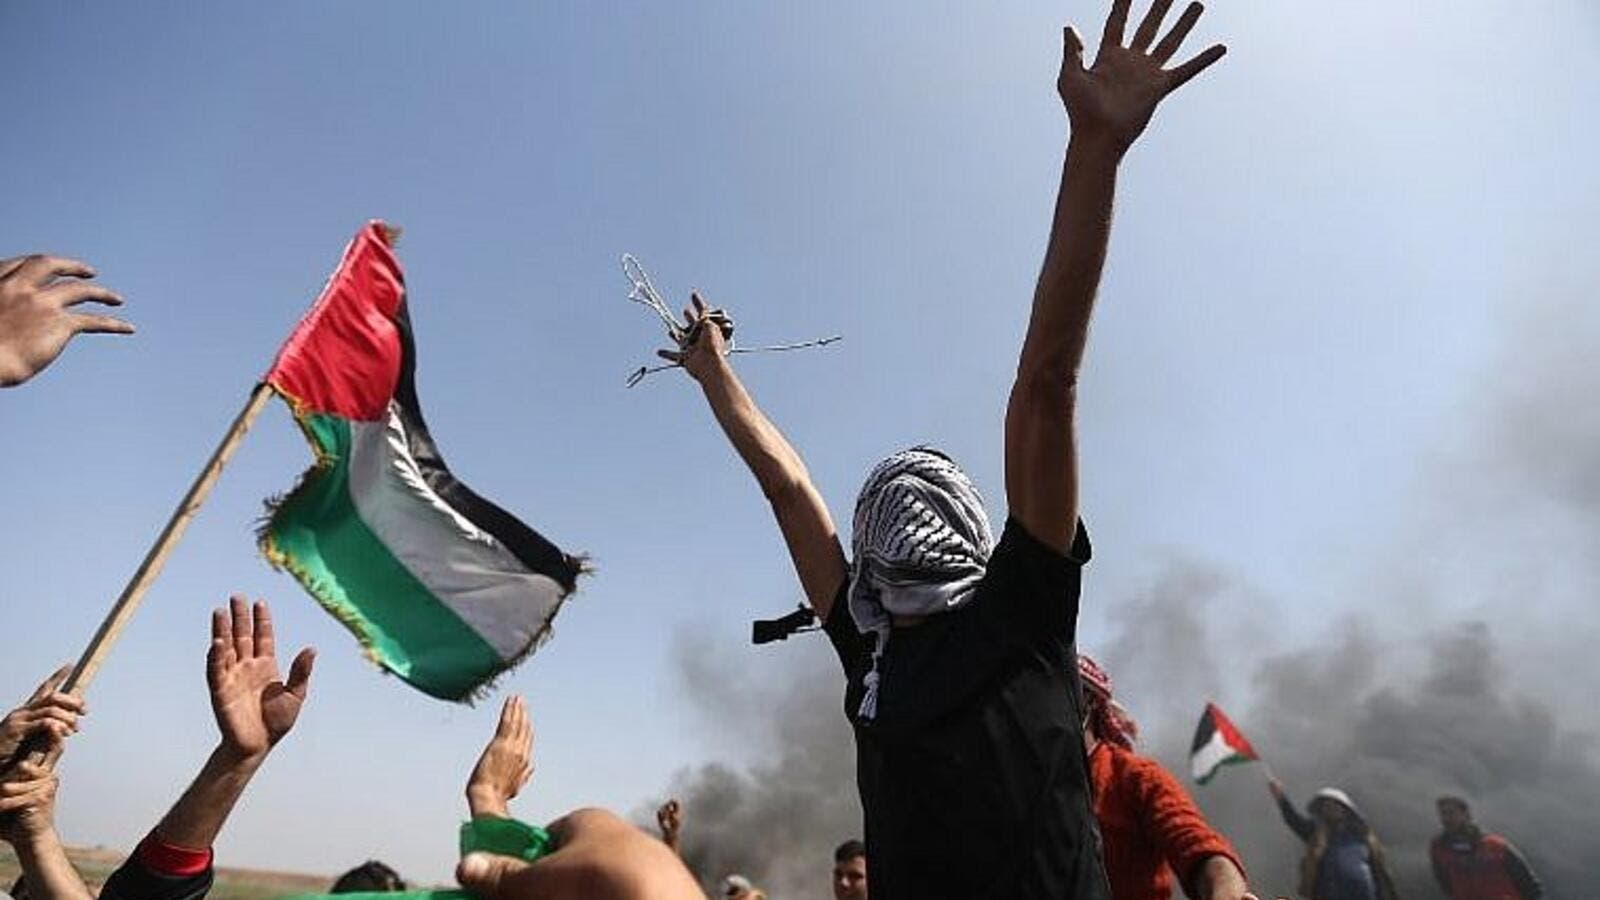 Palestinian demonstrators wave their national flag and shout slogans against Israeli security forces during a protest on the Israel-Gaza border in the northern Gaza Strip on April 6, 2018. (AFP/Mohammed Abed)